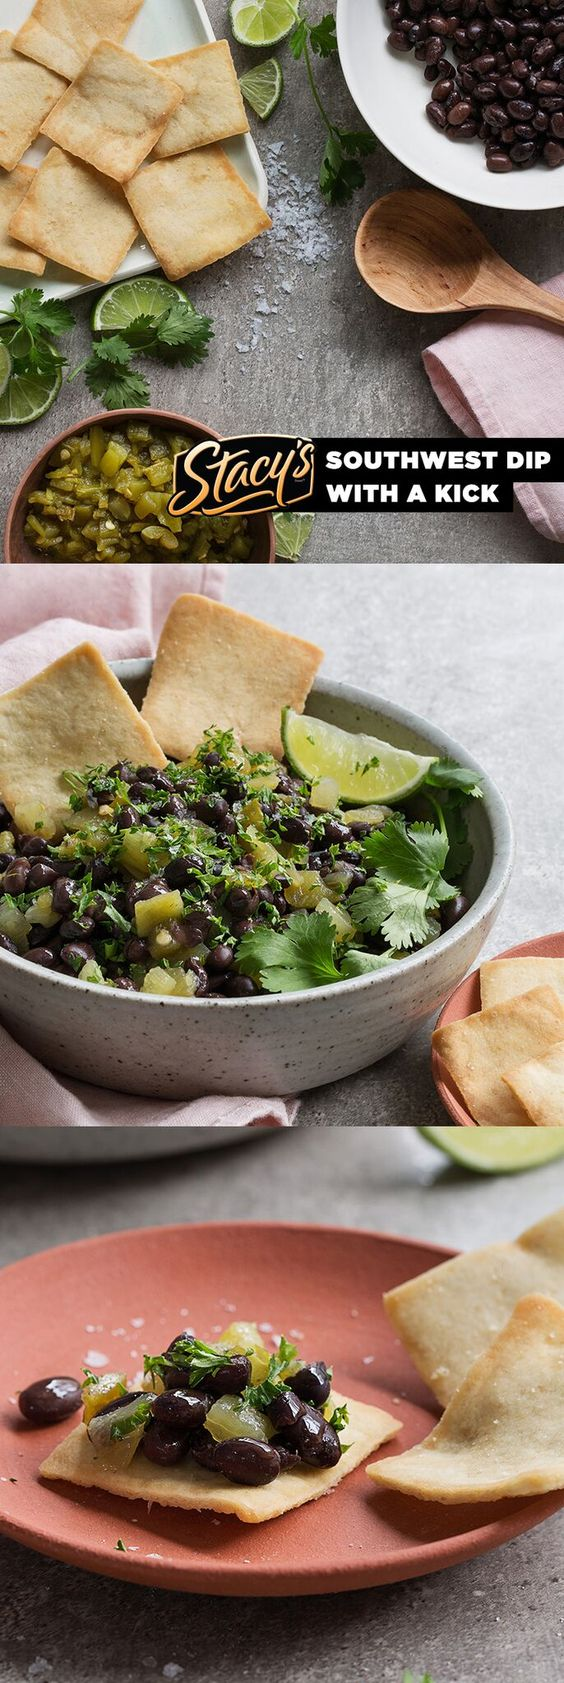 Green Chile Black Bean Salsa by James Beard Award-winning chef Hugh Acheson. Enjoy this fast fresh bean salsa in inspired by Stacy's® and the flavors of Phoenix with James Beard Foundation's Taste America Tour.: